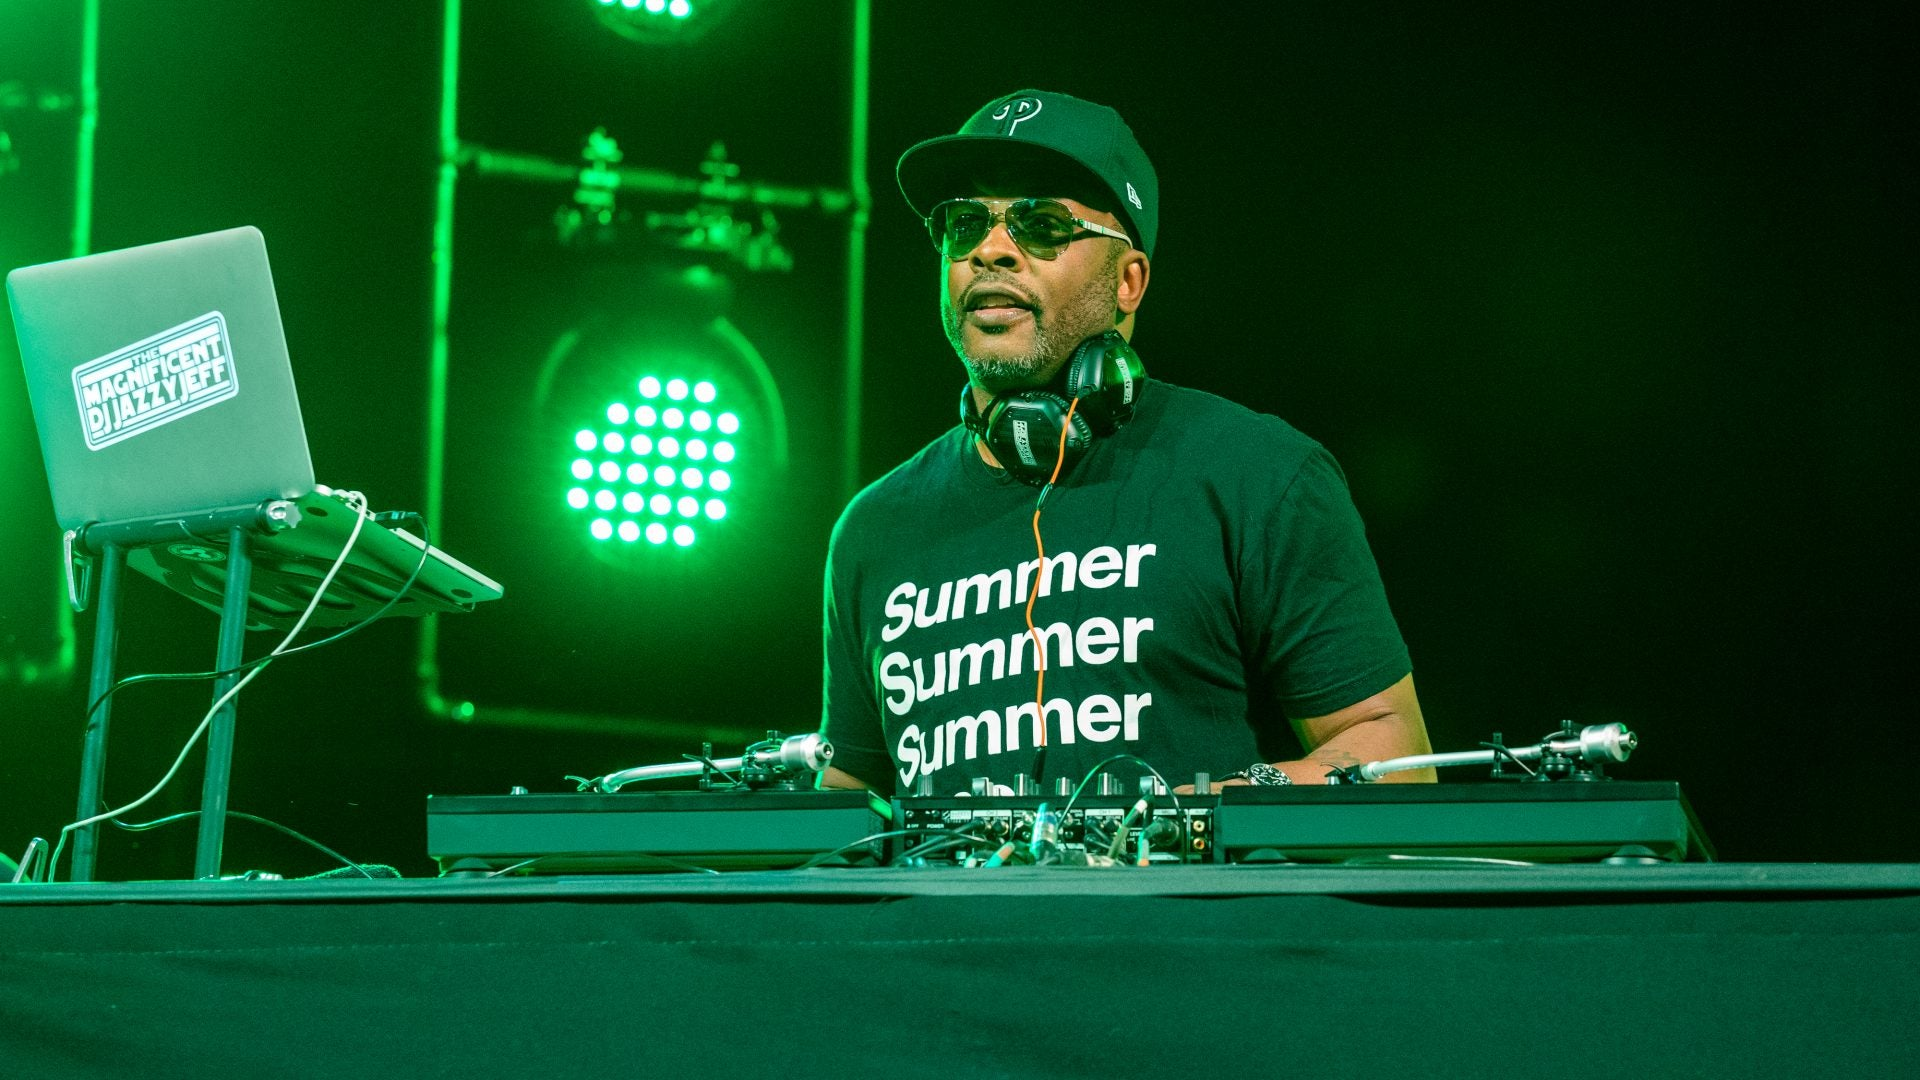 DJ Jazzy Jeff Diagnosed With Pneumonia, May Have COVID-19